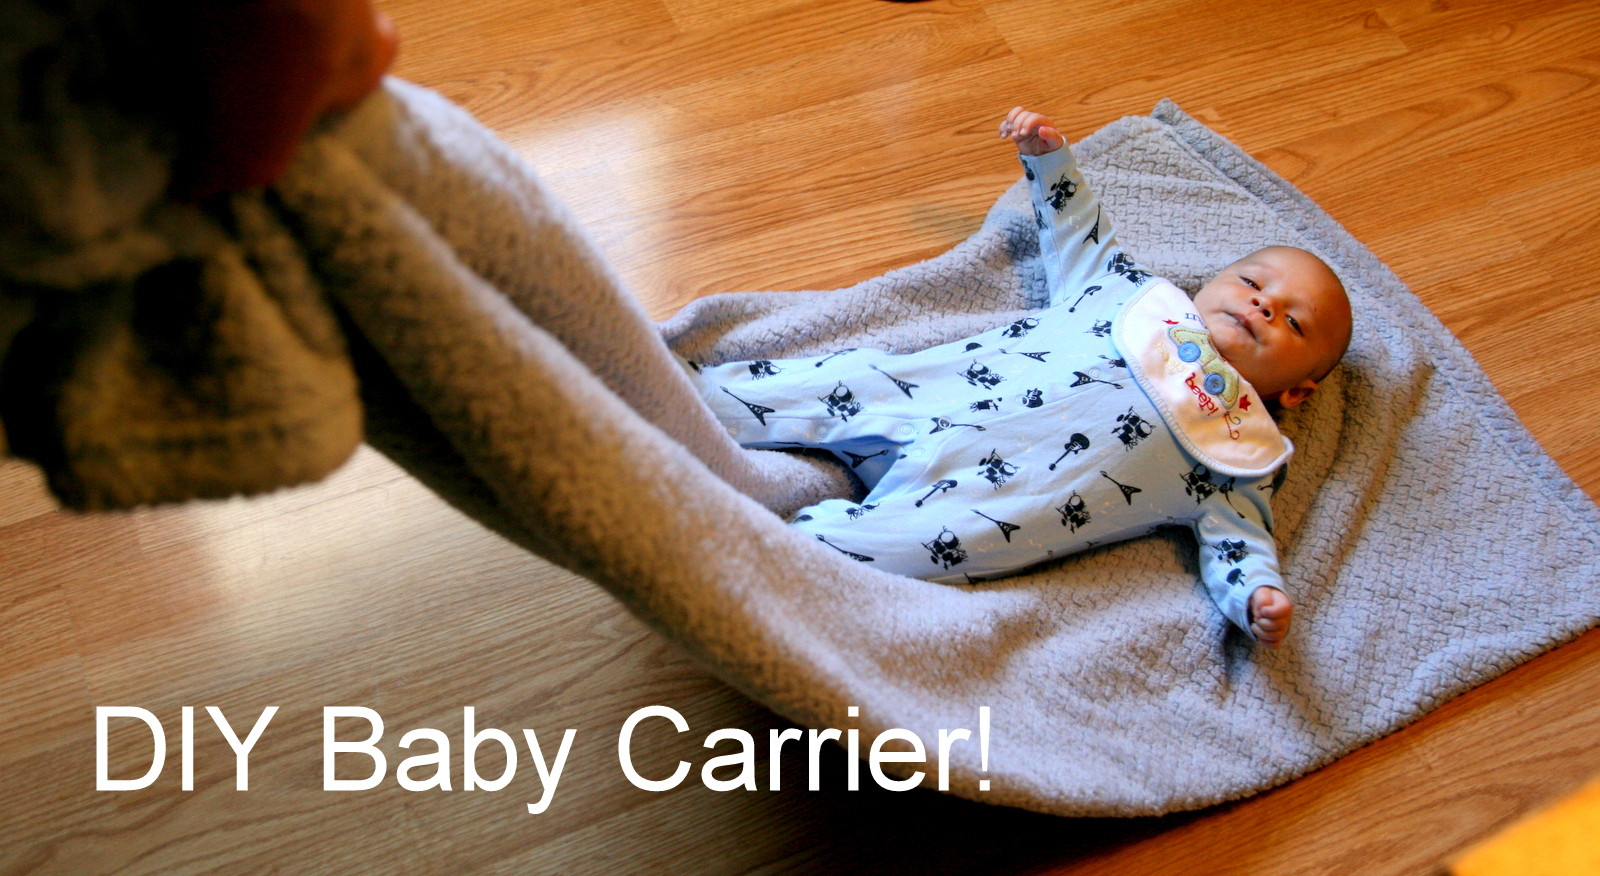 Best ideas about DIY Baby Carrier . Save or Pin Full The Dickens DIY Baby Carrier Now.